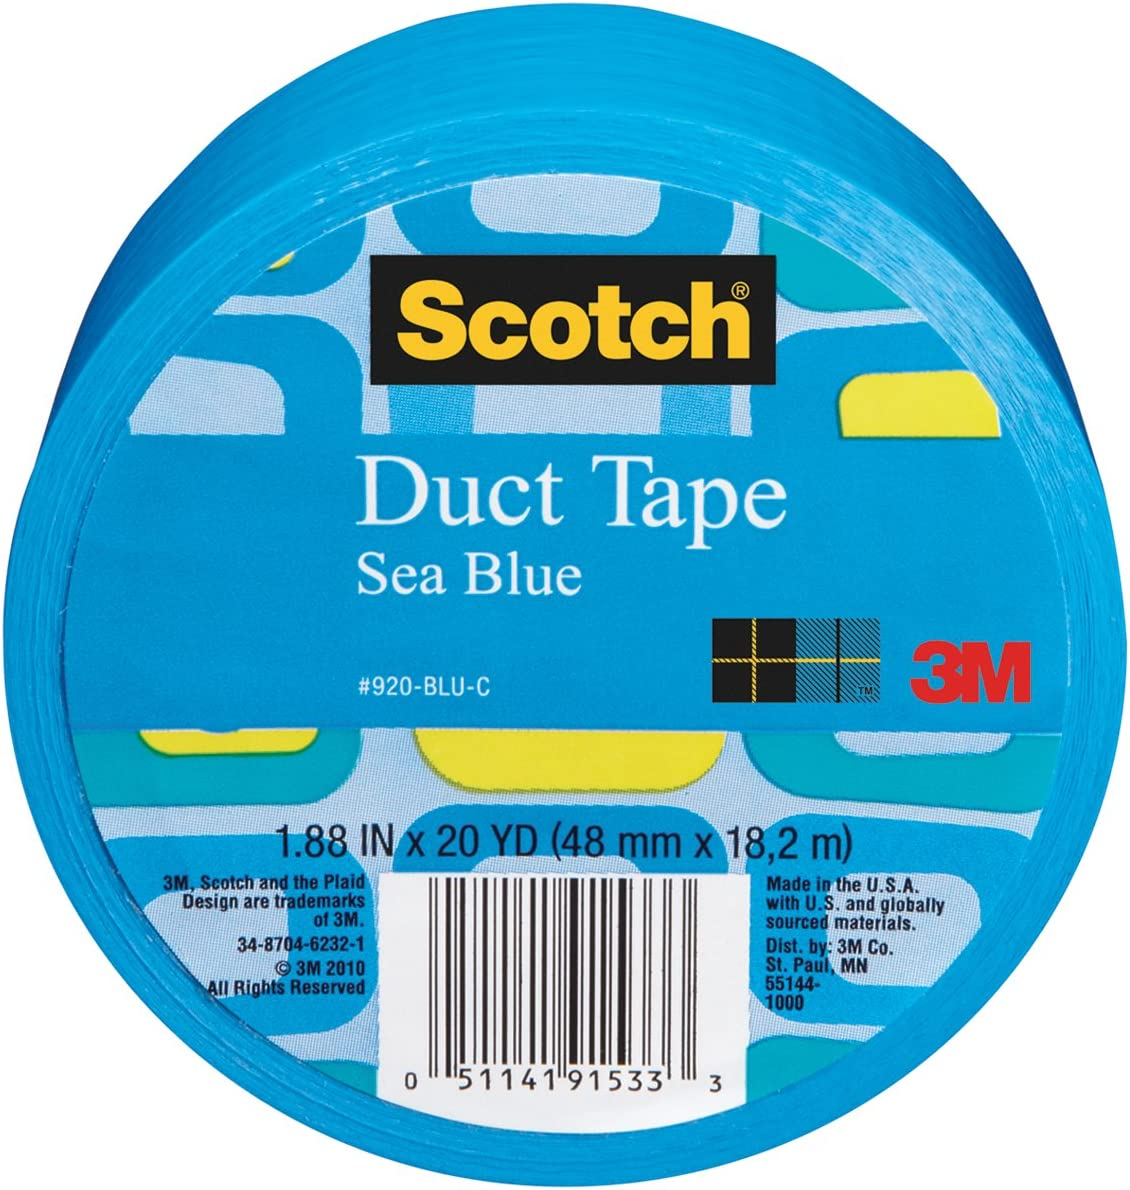 Scotch Duct Tape, Sea Blue, 1.88-Inch by 20-Yard